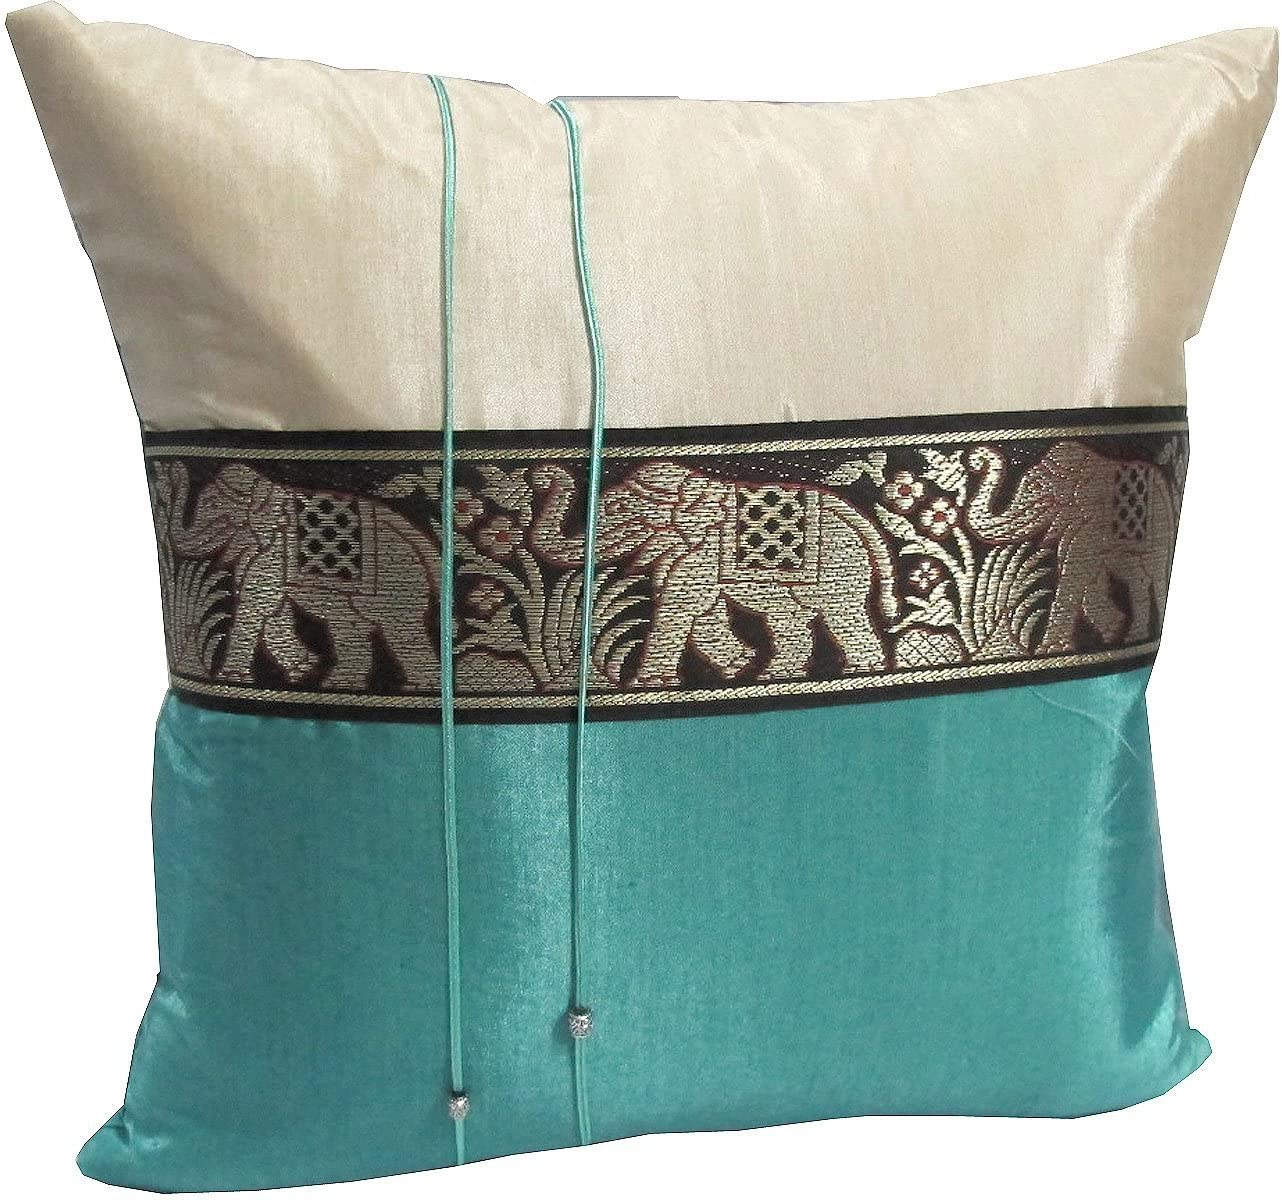 SINGLE 1 BEAUTIFUL BIG ELEPHANT THROW CUSHION COVER PILLOW CASE HANDMADE BY THAI SILK AND COTTON FOR DECORATIVE SOFA, CAR AND LIVING ROOM SIZE 16 X 16 INCHES